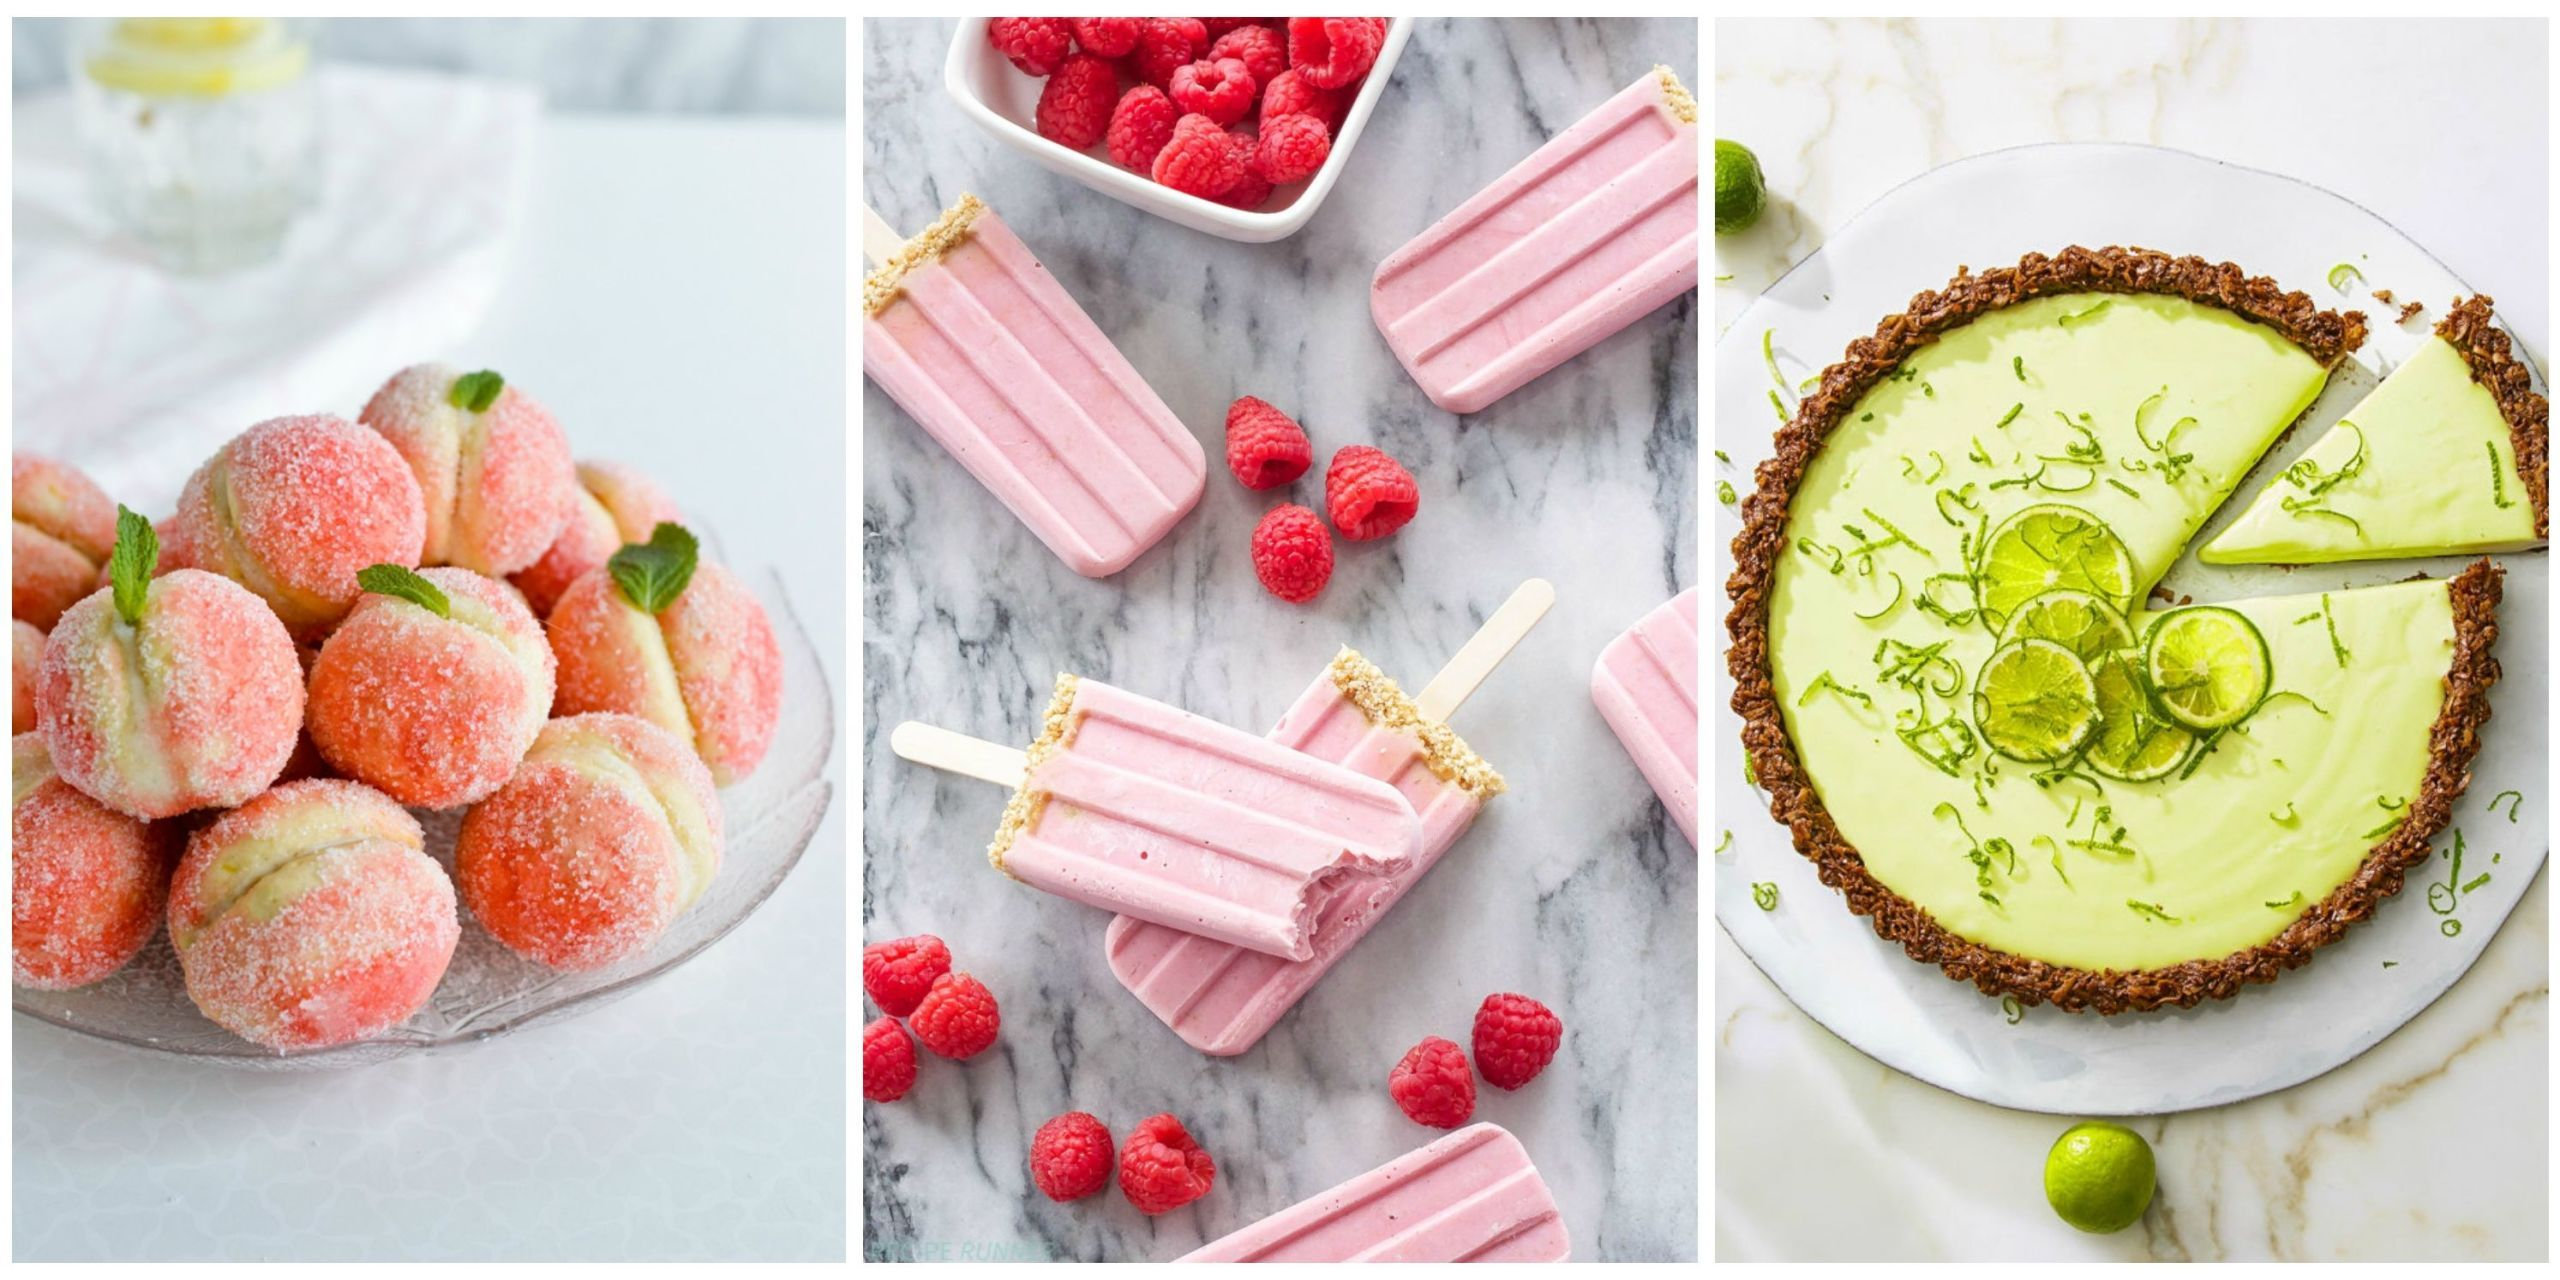 Summer Is Full Of Great Desserts To Enjoy. From Light And Refreshing To  Totally Decadent, Weu0027ve Got A Dessert For Every Big Event ...